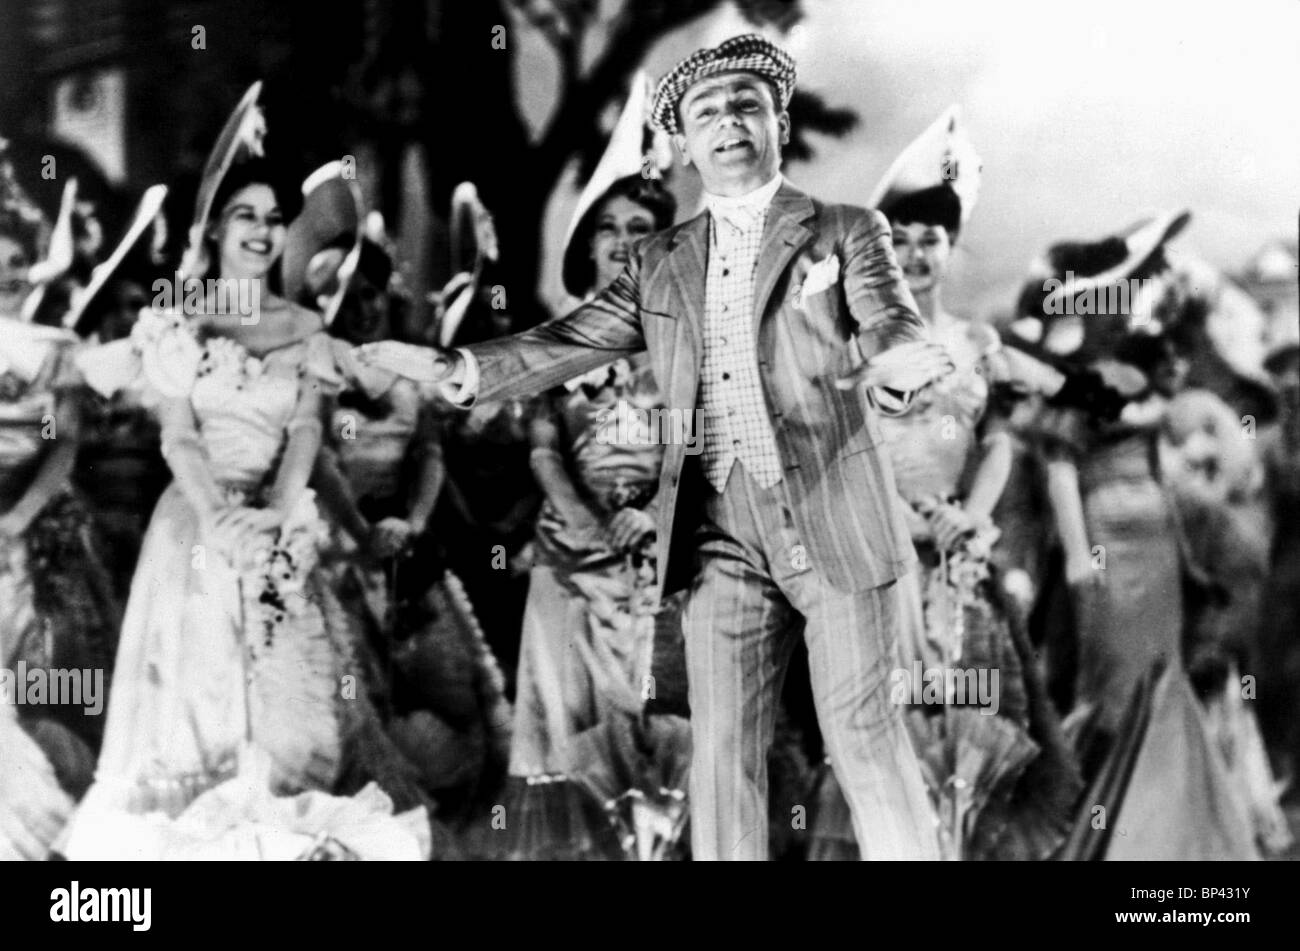 JAMES CAGNEY YANKEE DOODLE DANDY (1942) - Stock Image